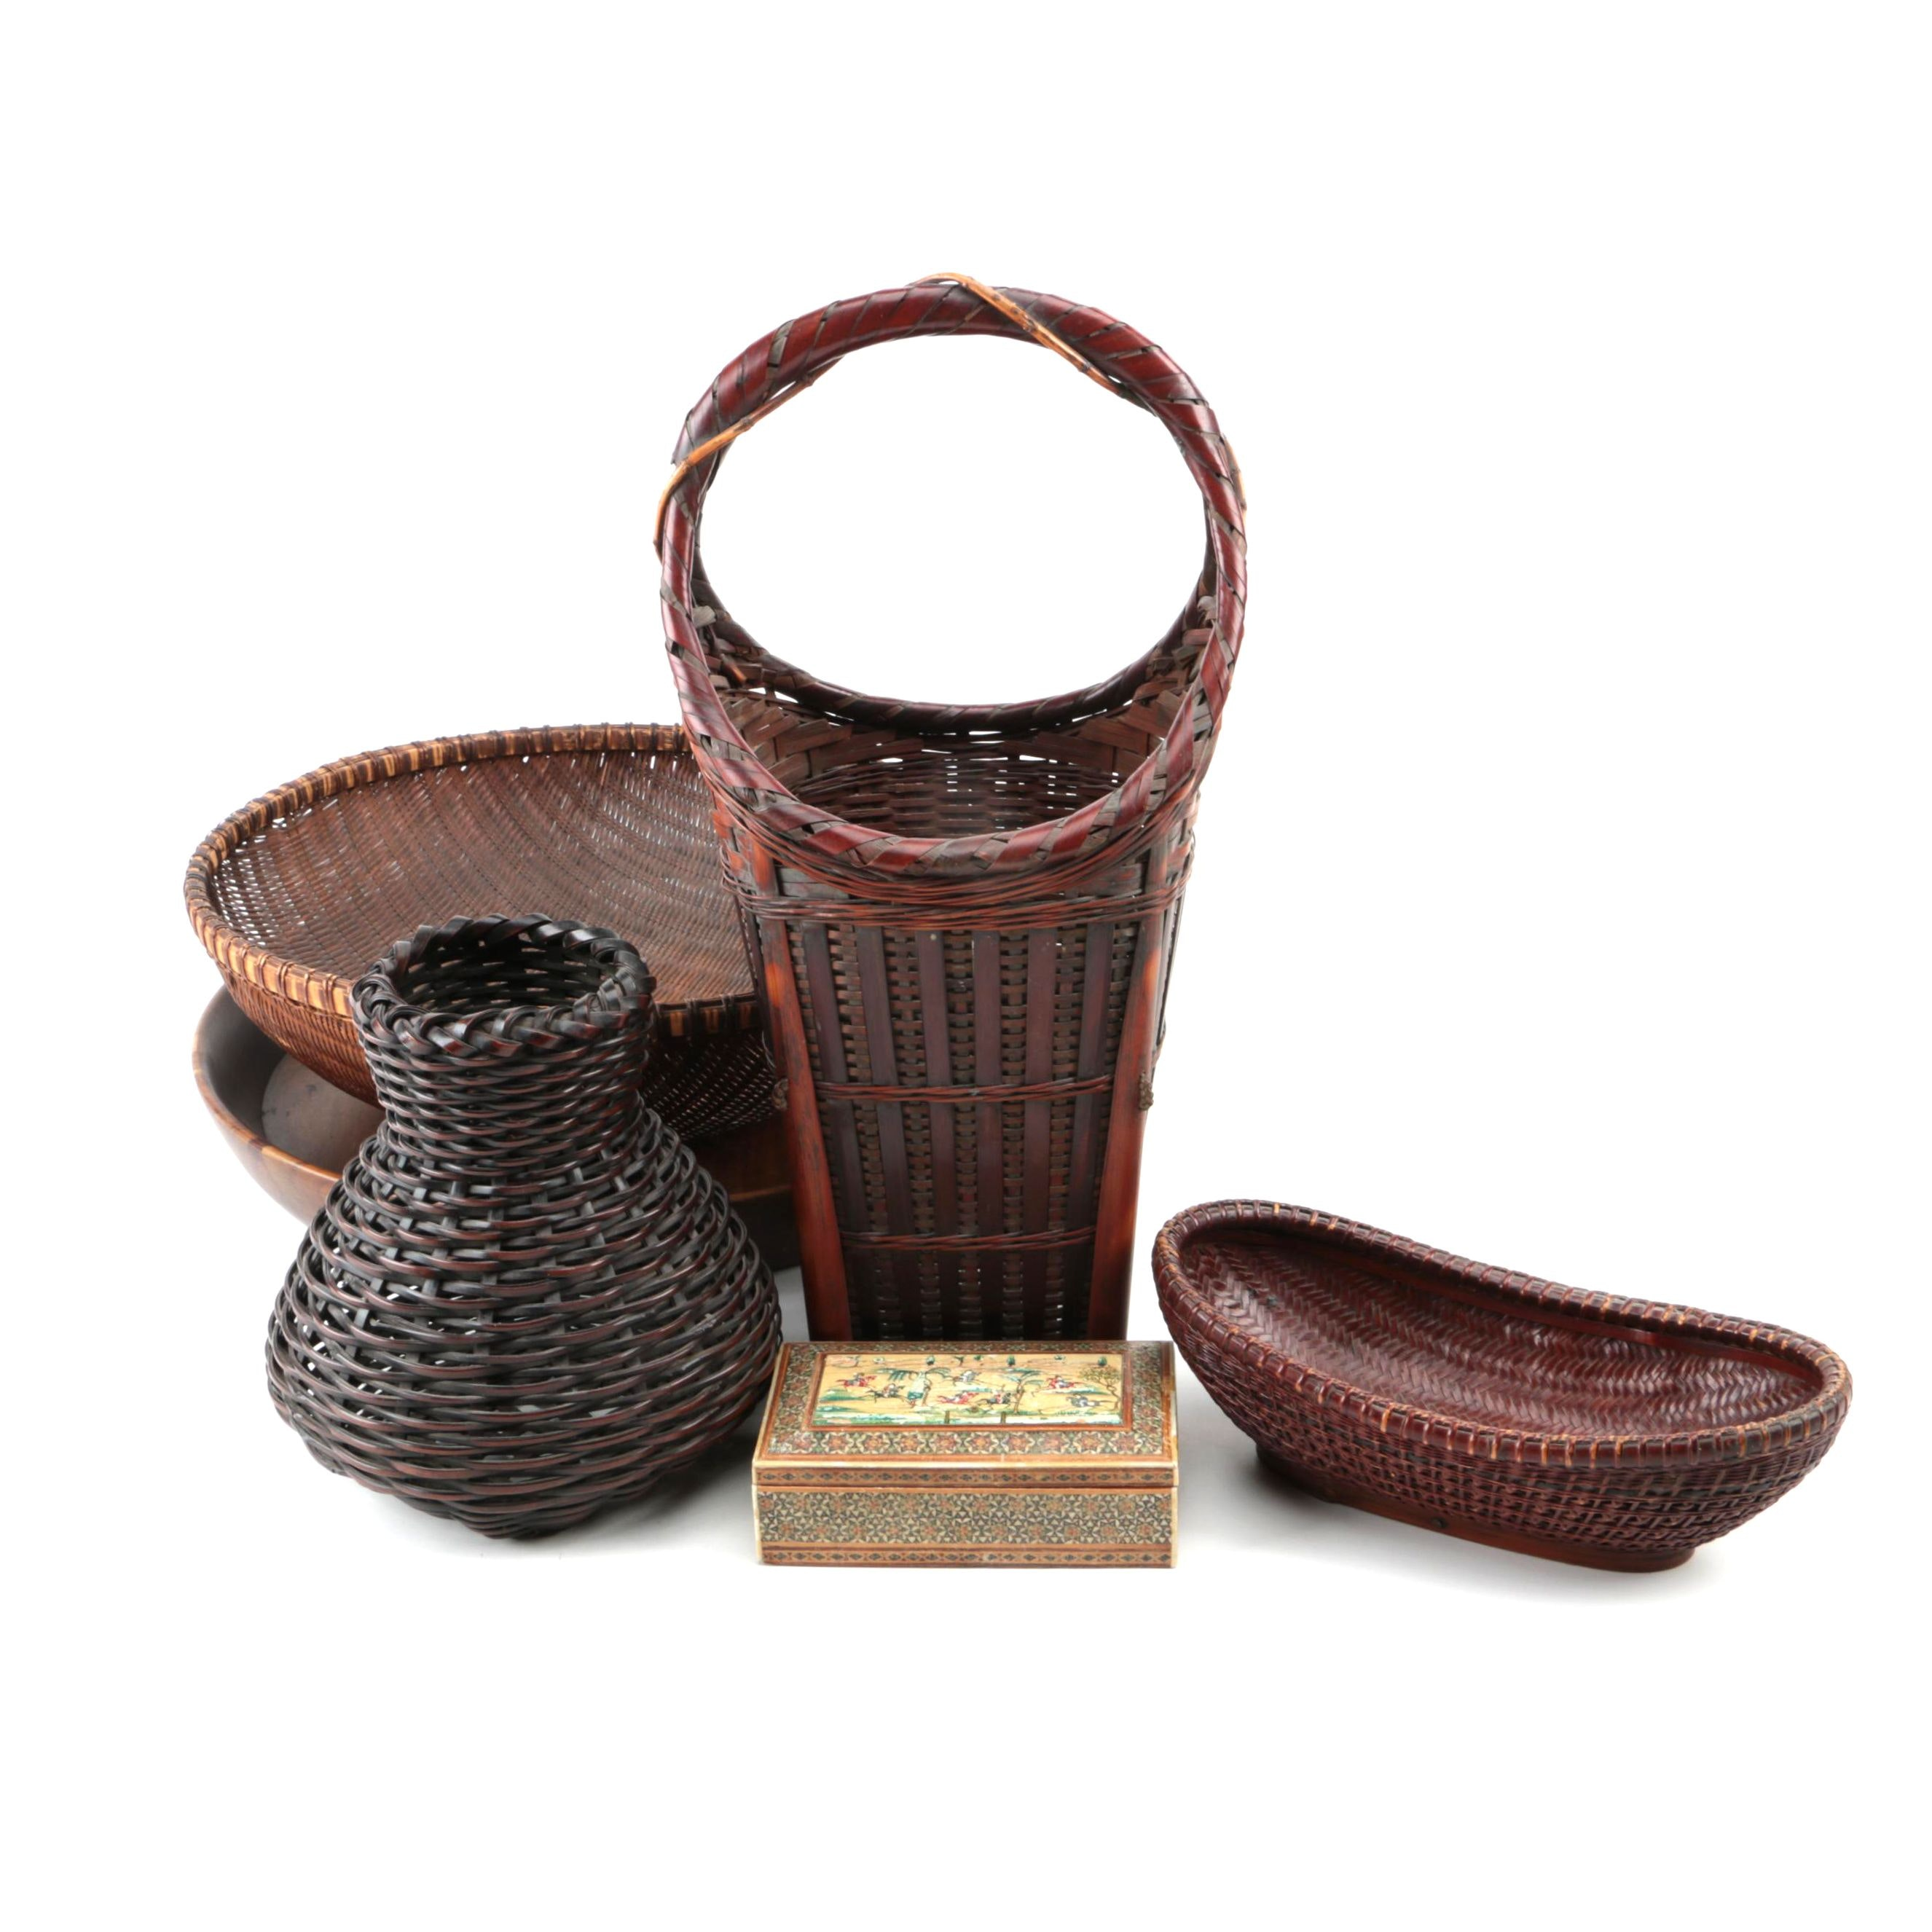 Collection of Baskets and Decorative Items